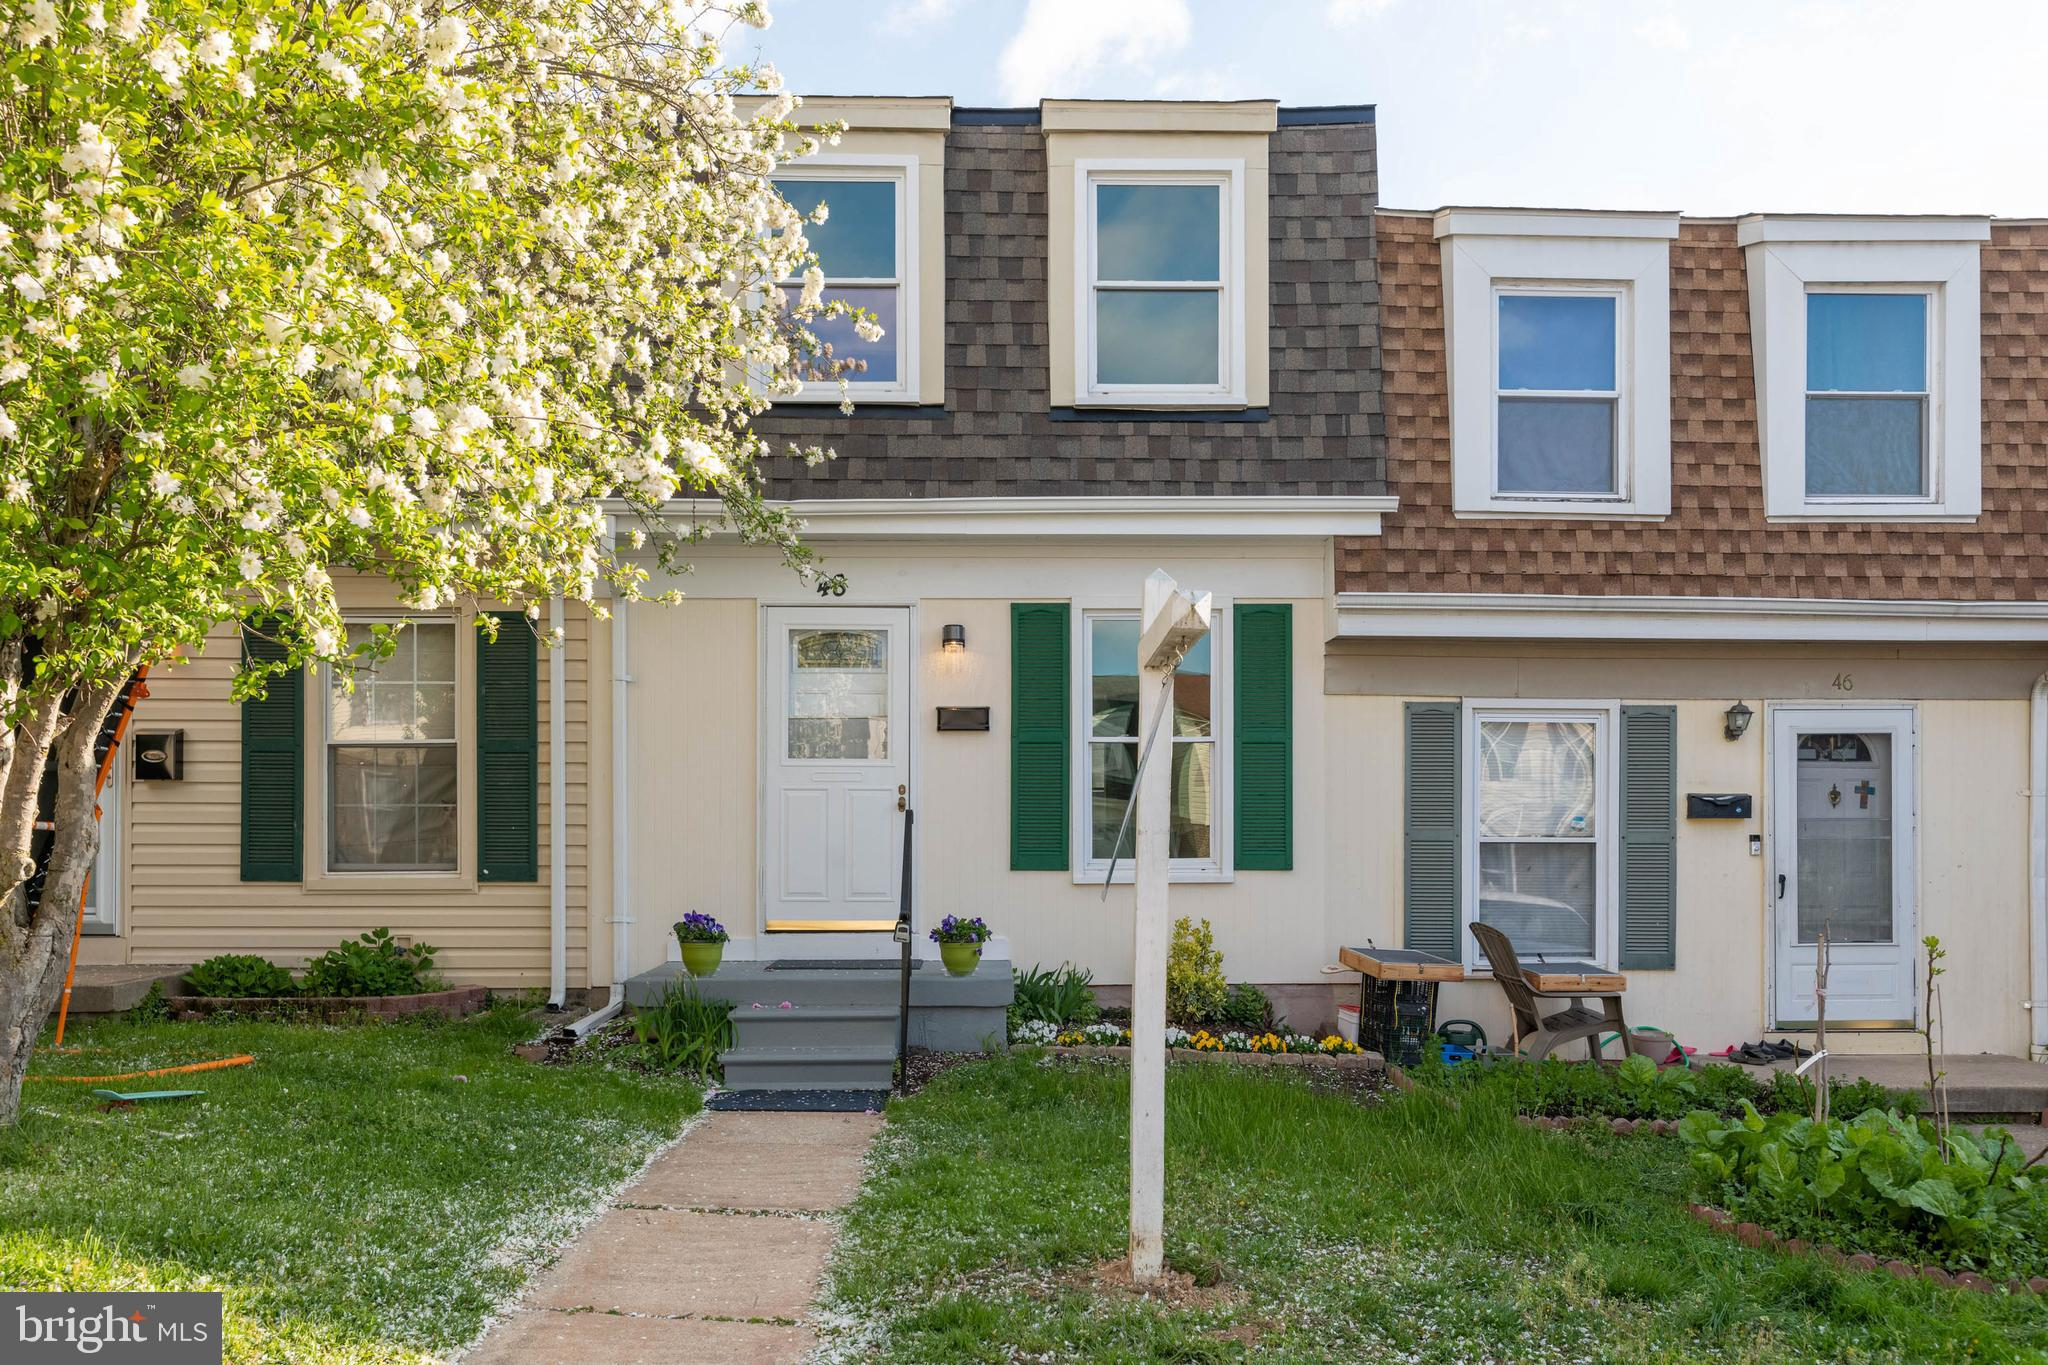 48 LERNER COURT, BALTIMORE, Maryland 21236, 3 Bedrooms Bedrooms, ,2 BathroomsBathrooms,Townhouse,For Sale,48 LERNER COURT,MDBC519116